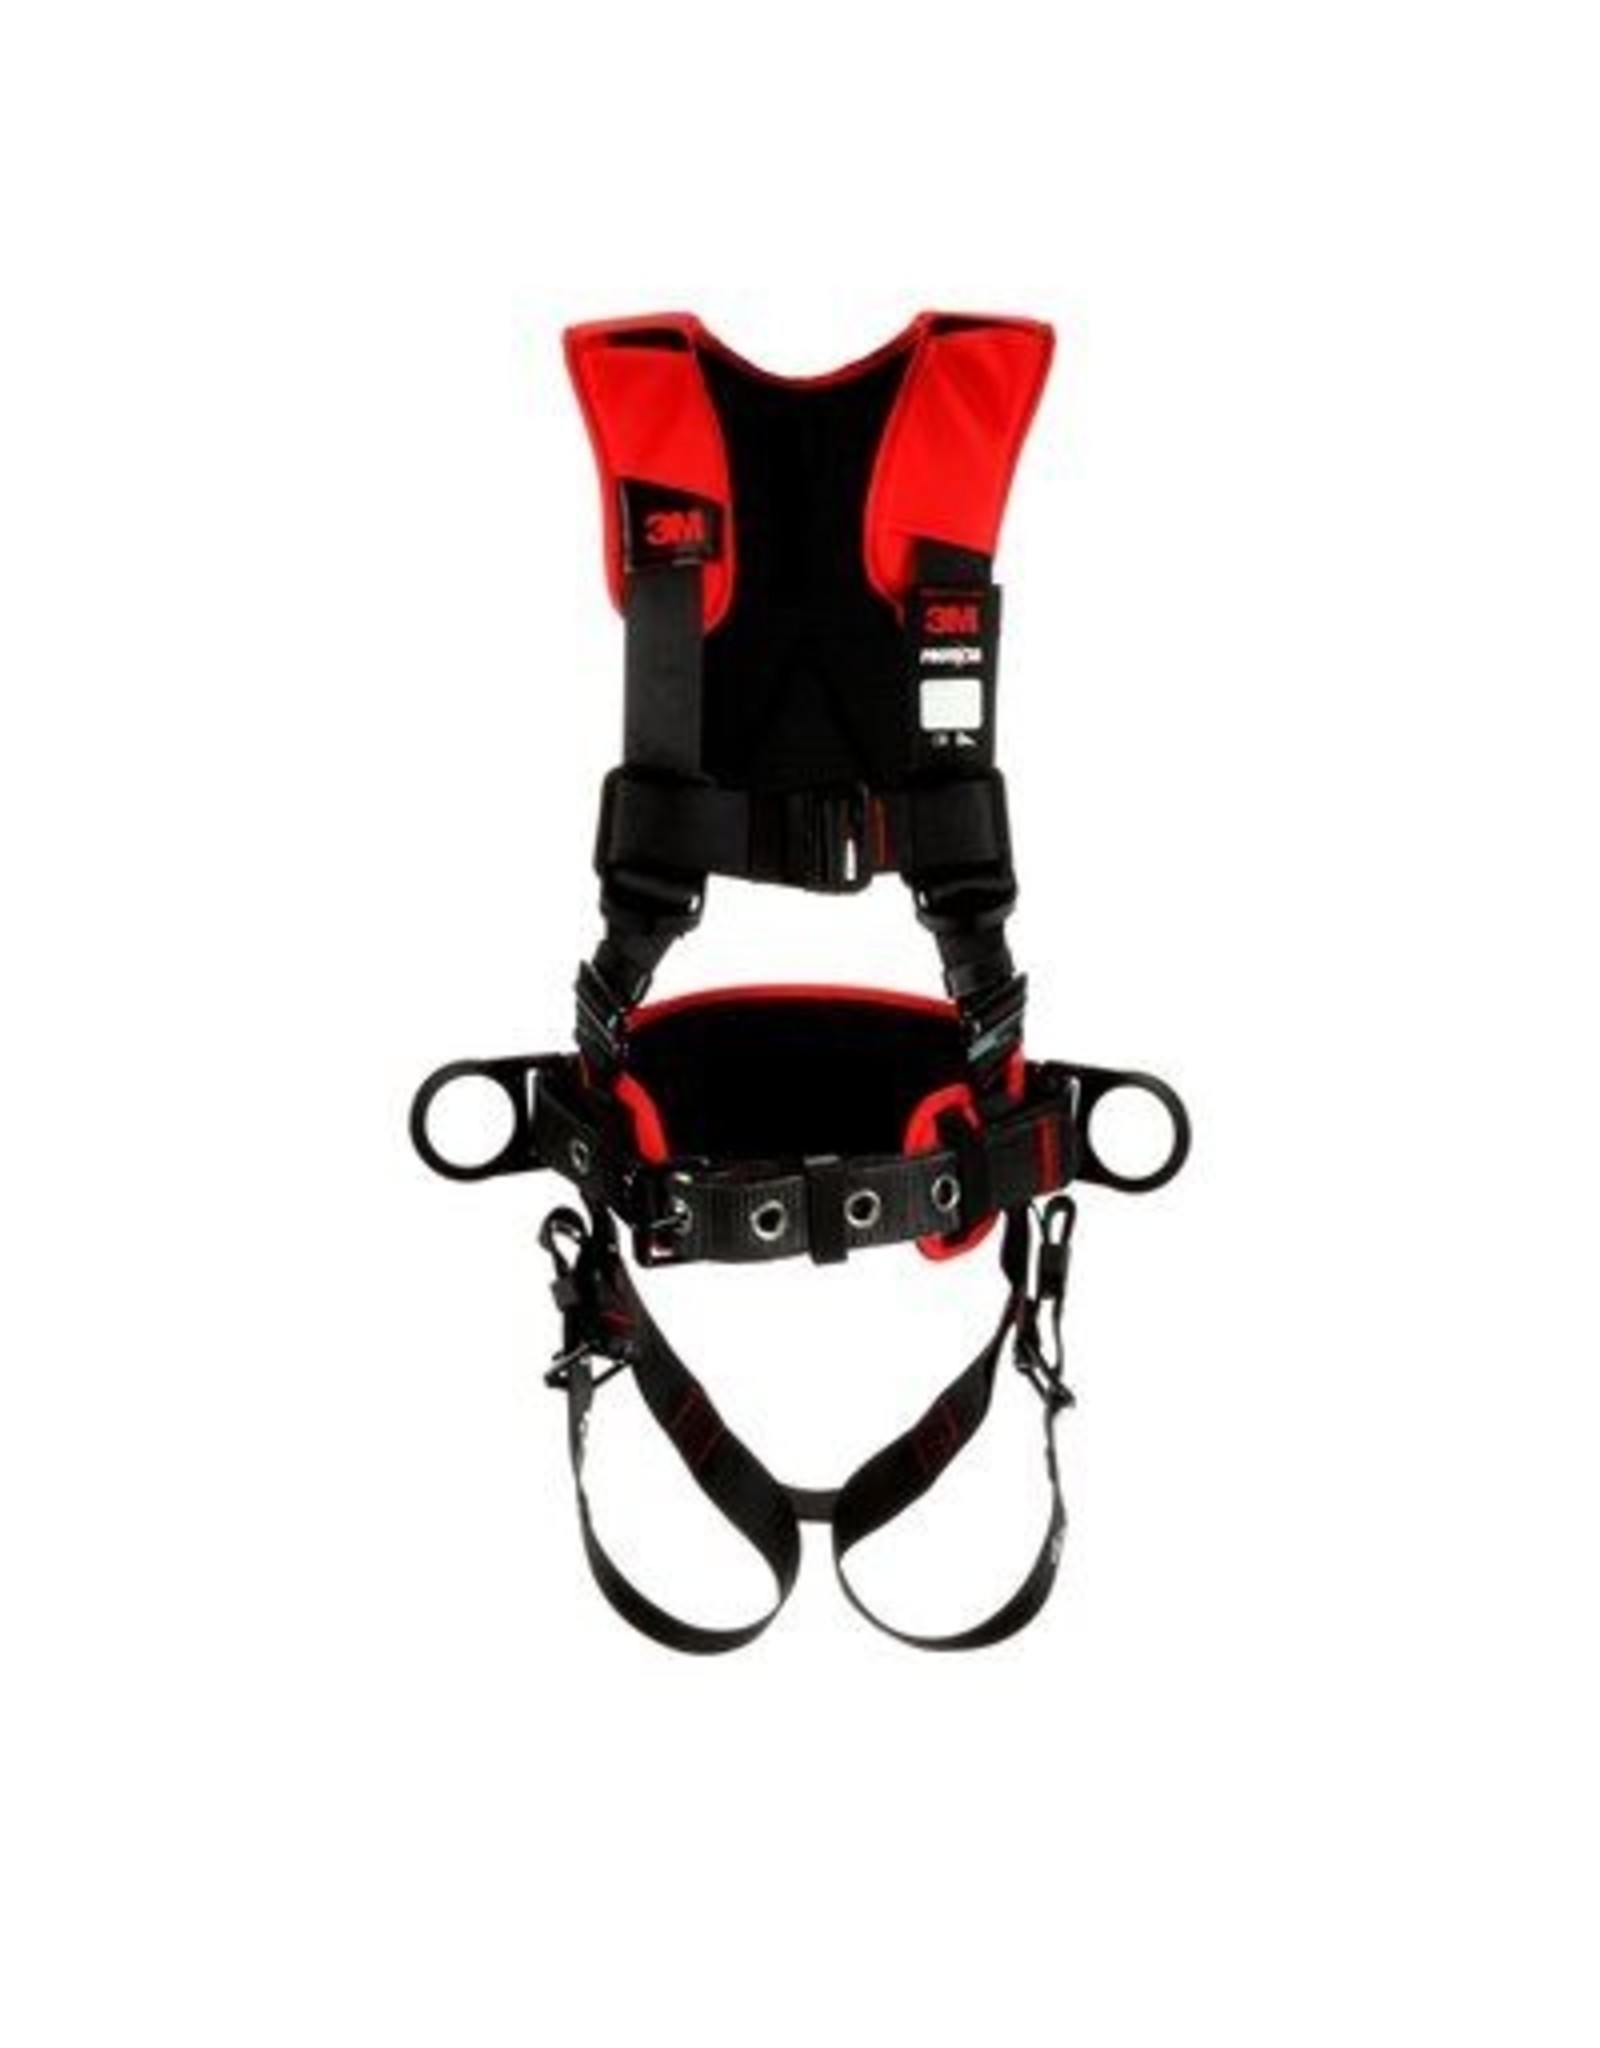 3M Protecta Construction Harness